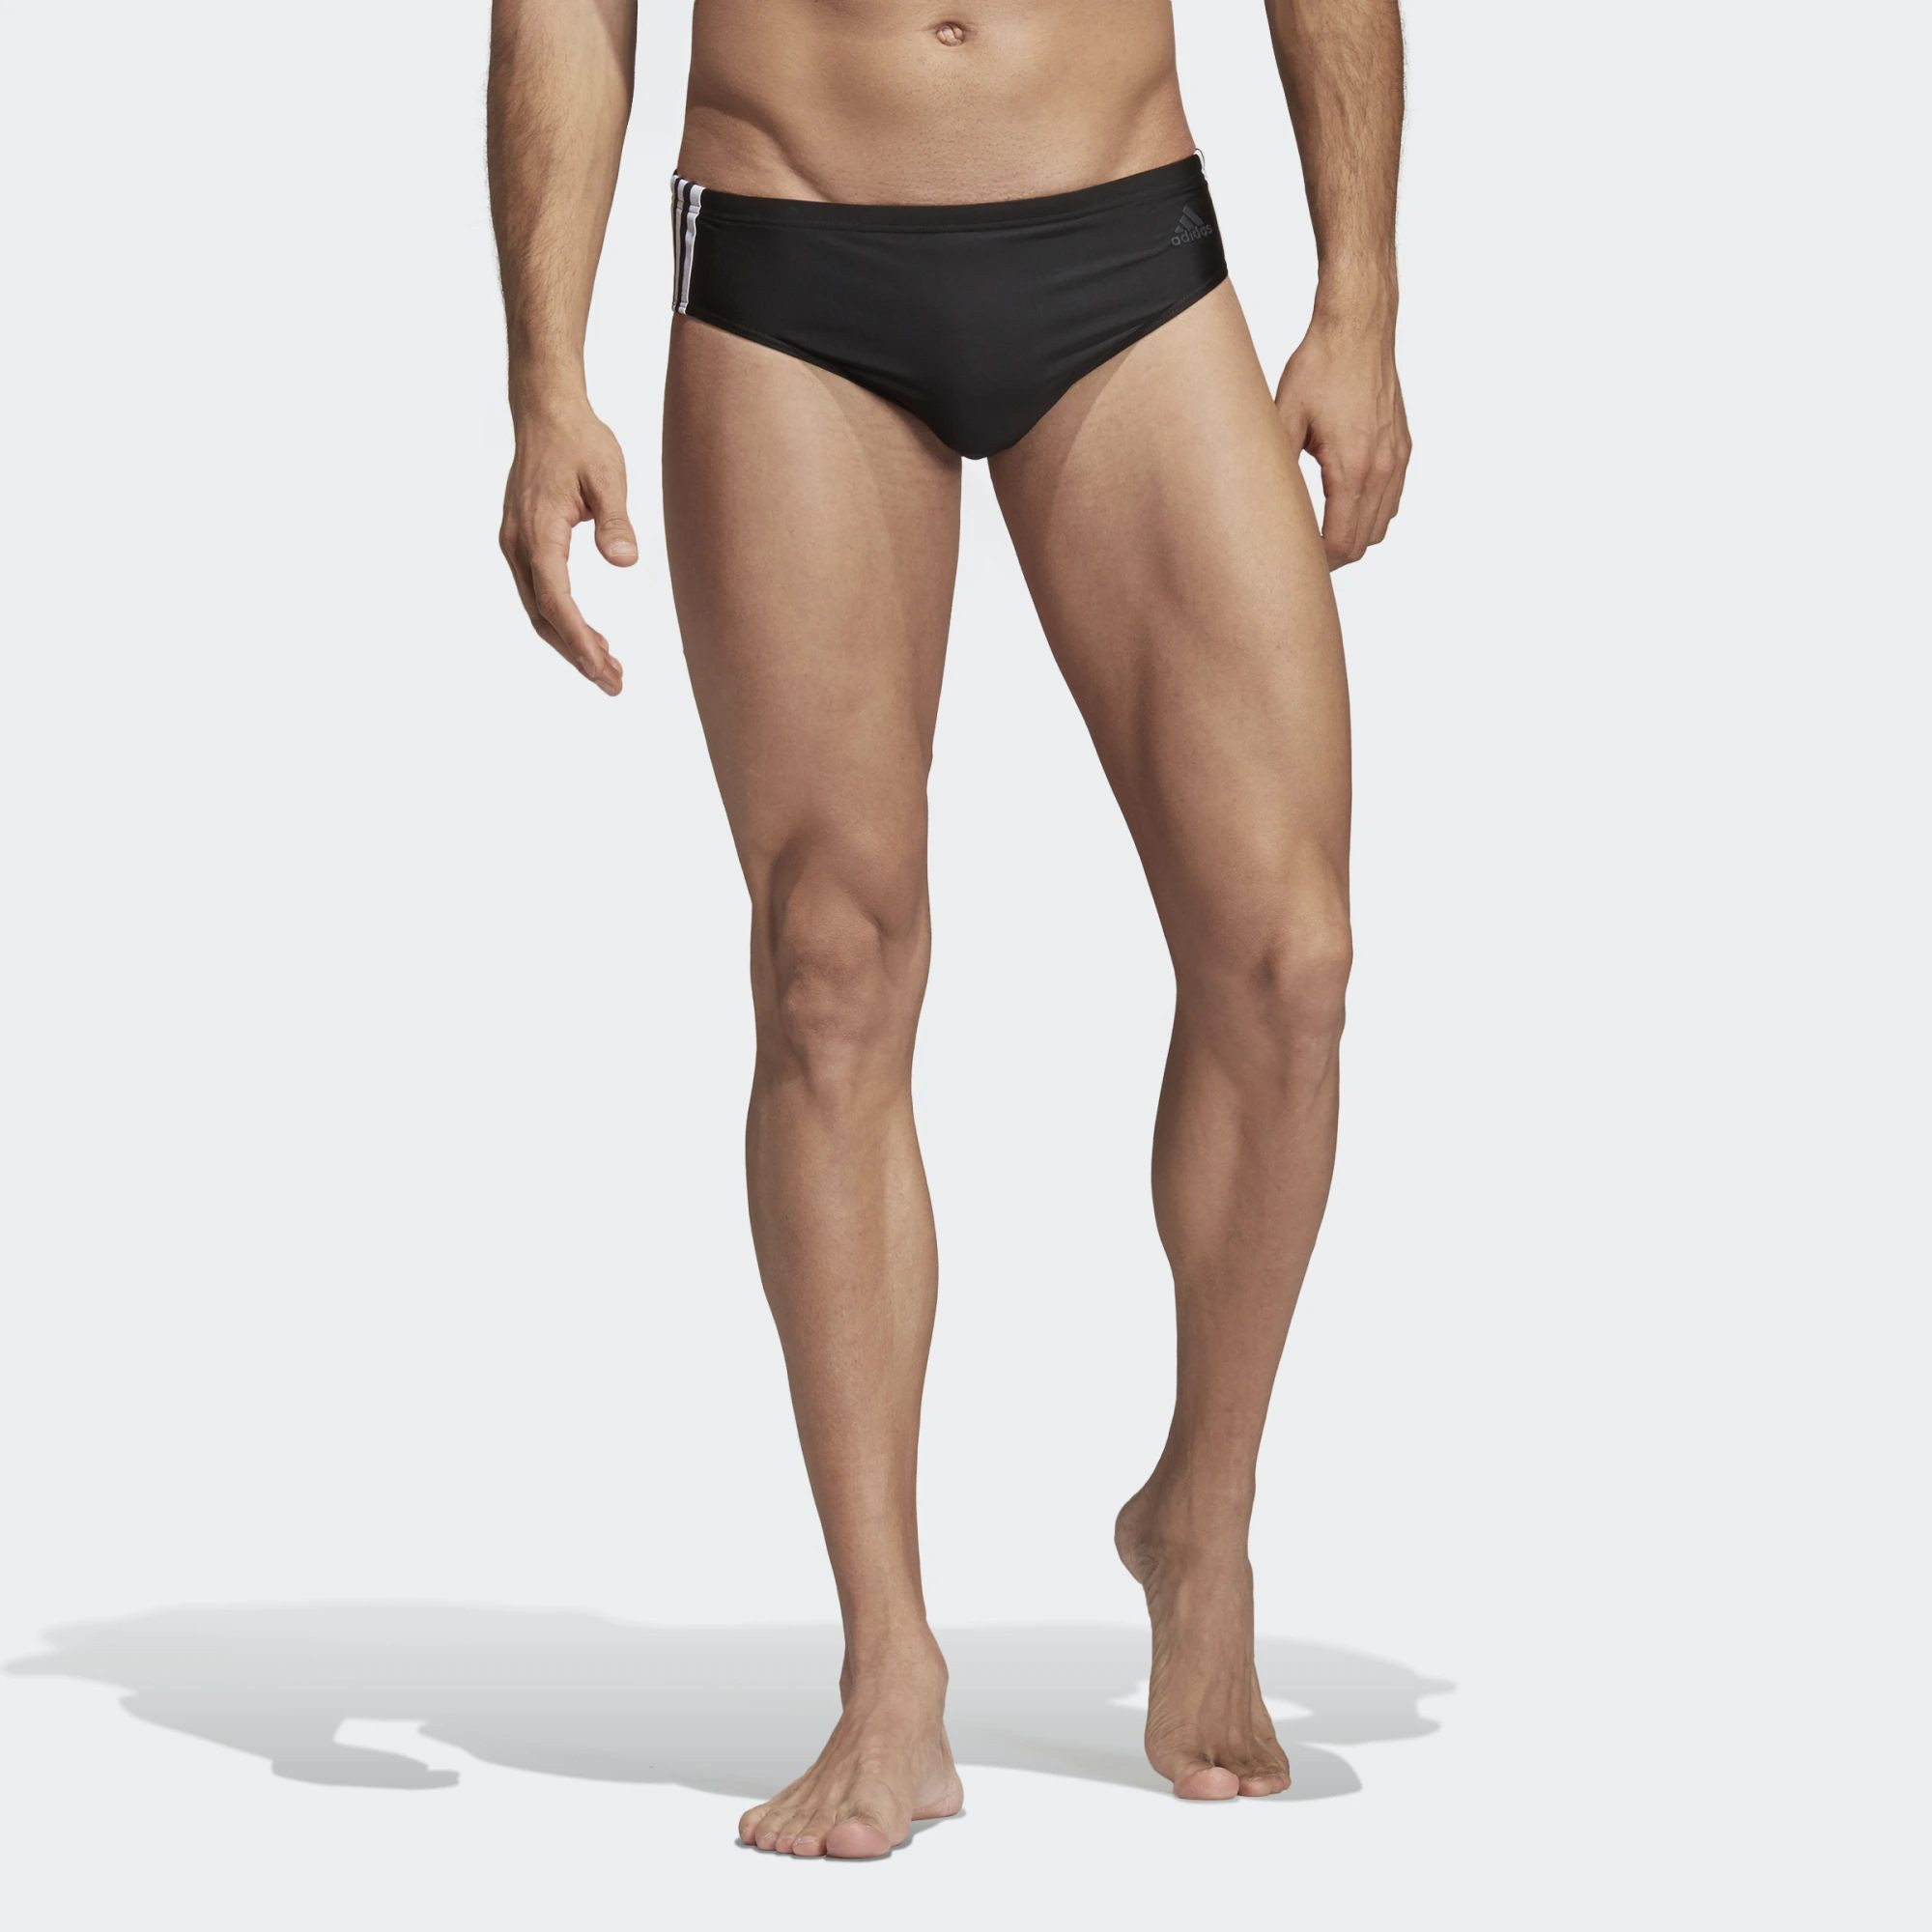 adidas Fitness 3-Stripes Swim Trunks - Ανδρικό Μαγιό (9000023351_1480)